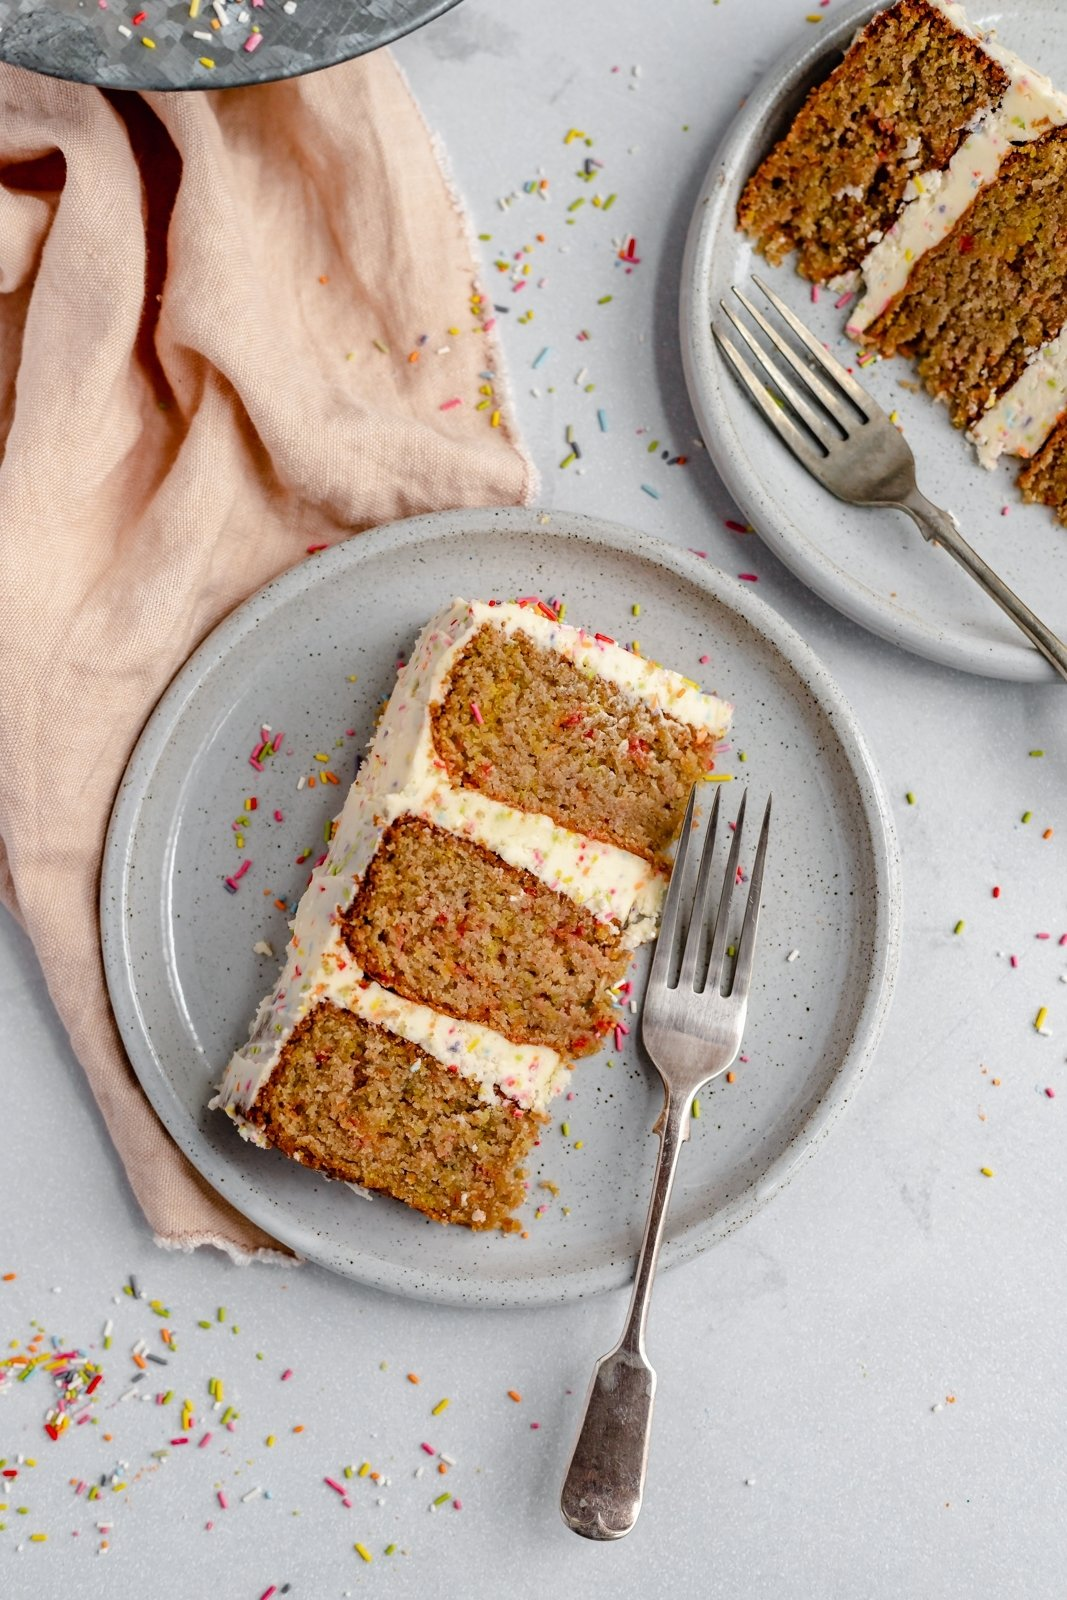 slice of homemade healthy birthday cake on a plate with a fork